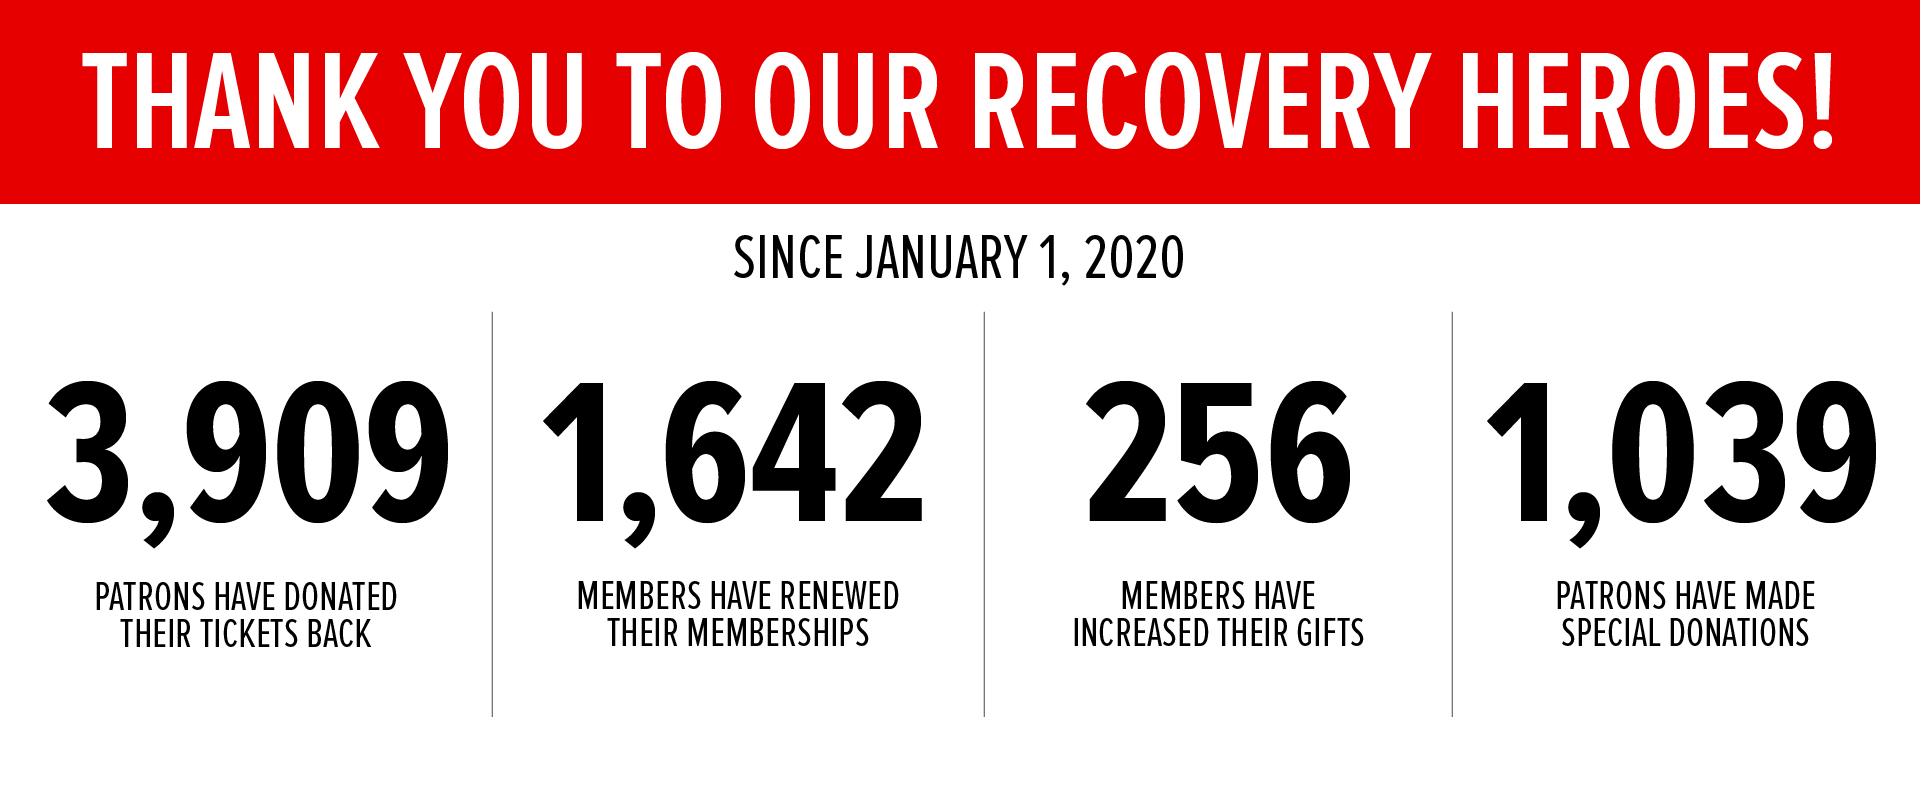 THANK YOU TO OUR RECOVERY HEROES